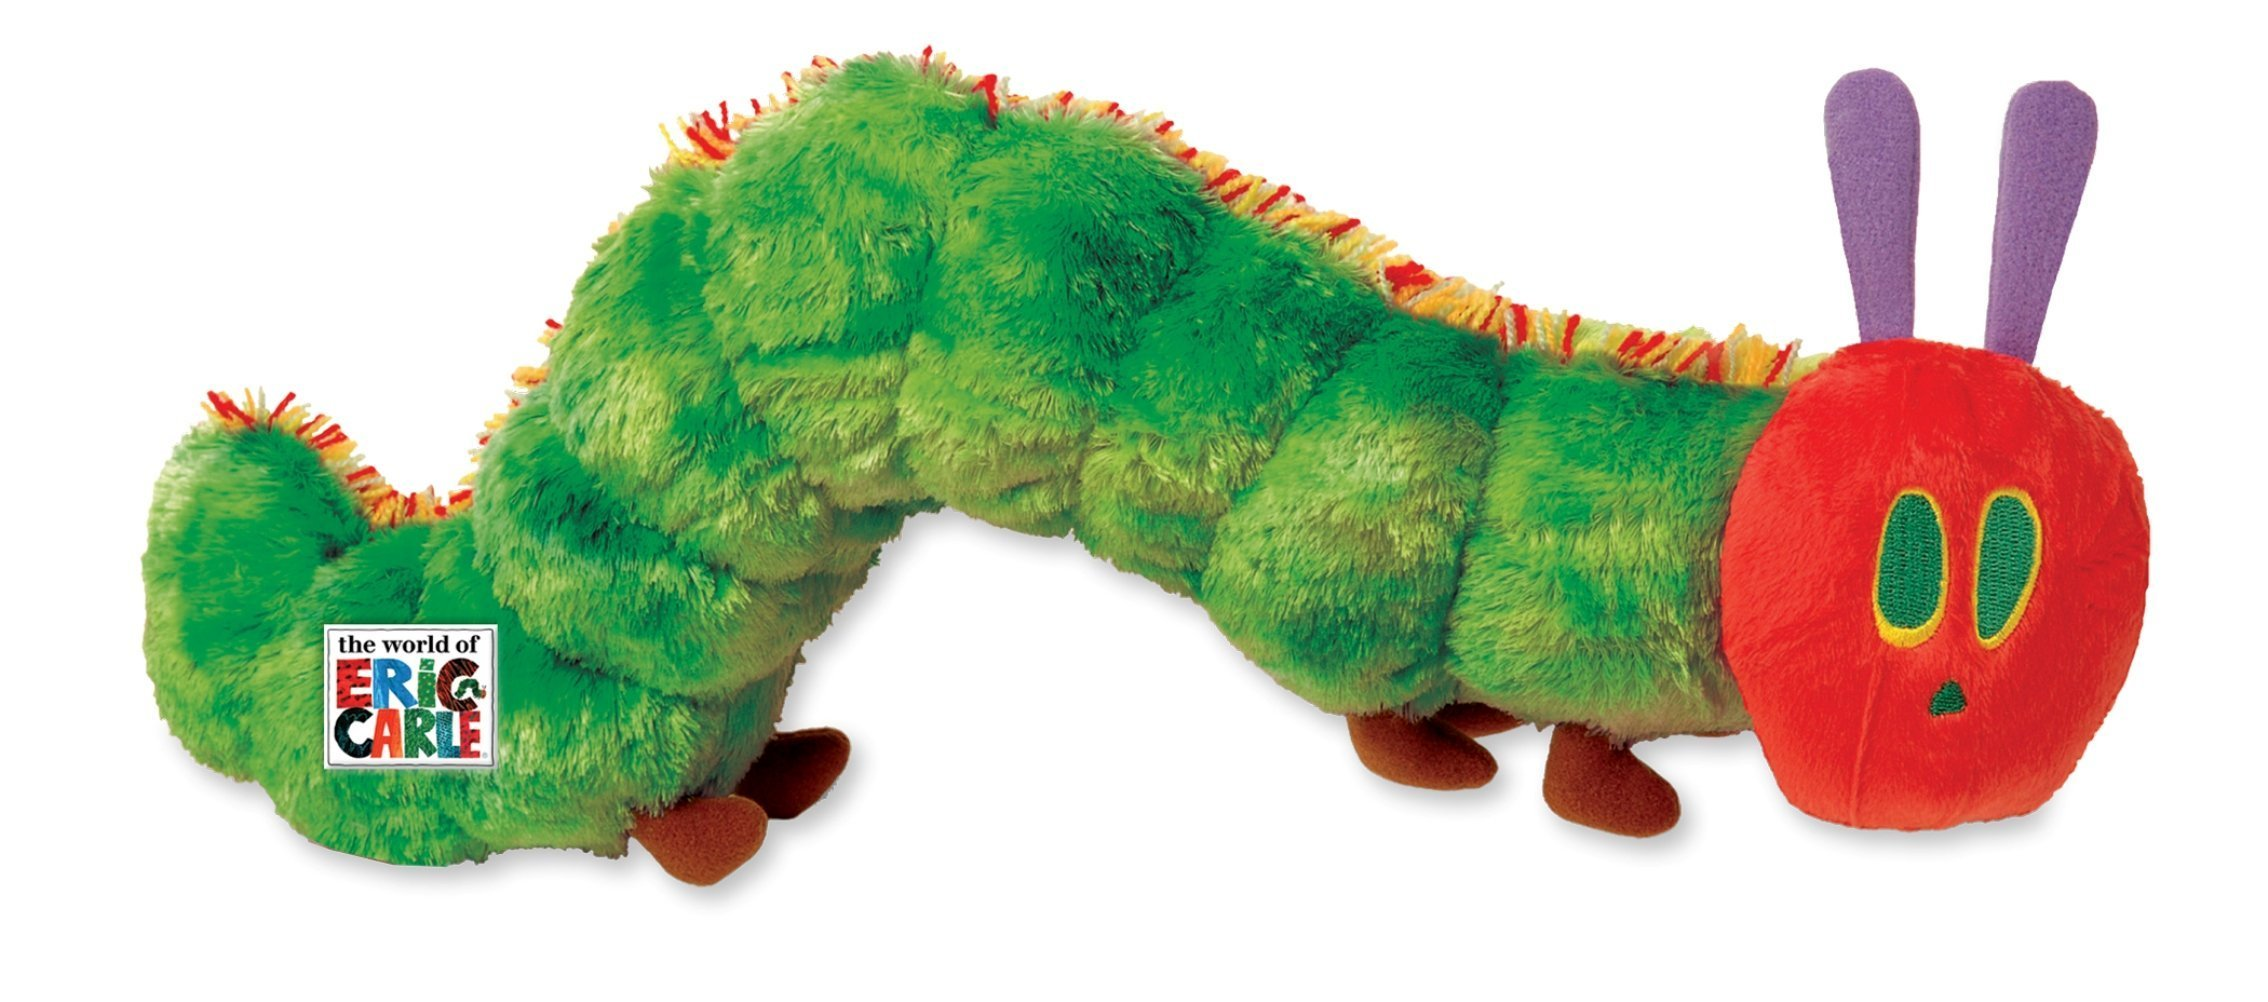 World of Eric Carle, Very Hungry Caterpillar Plush